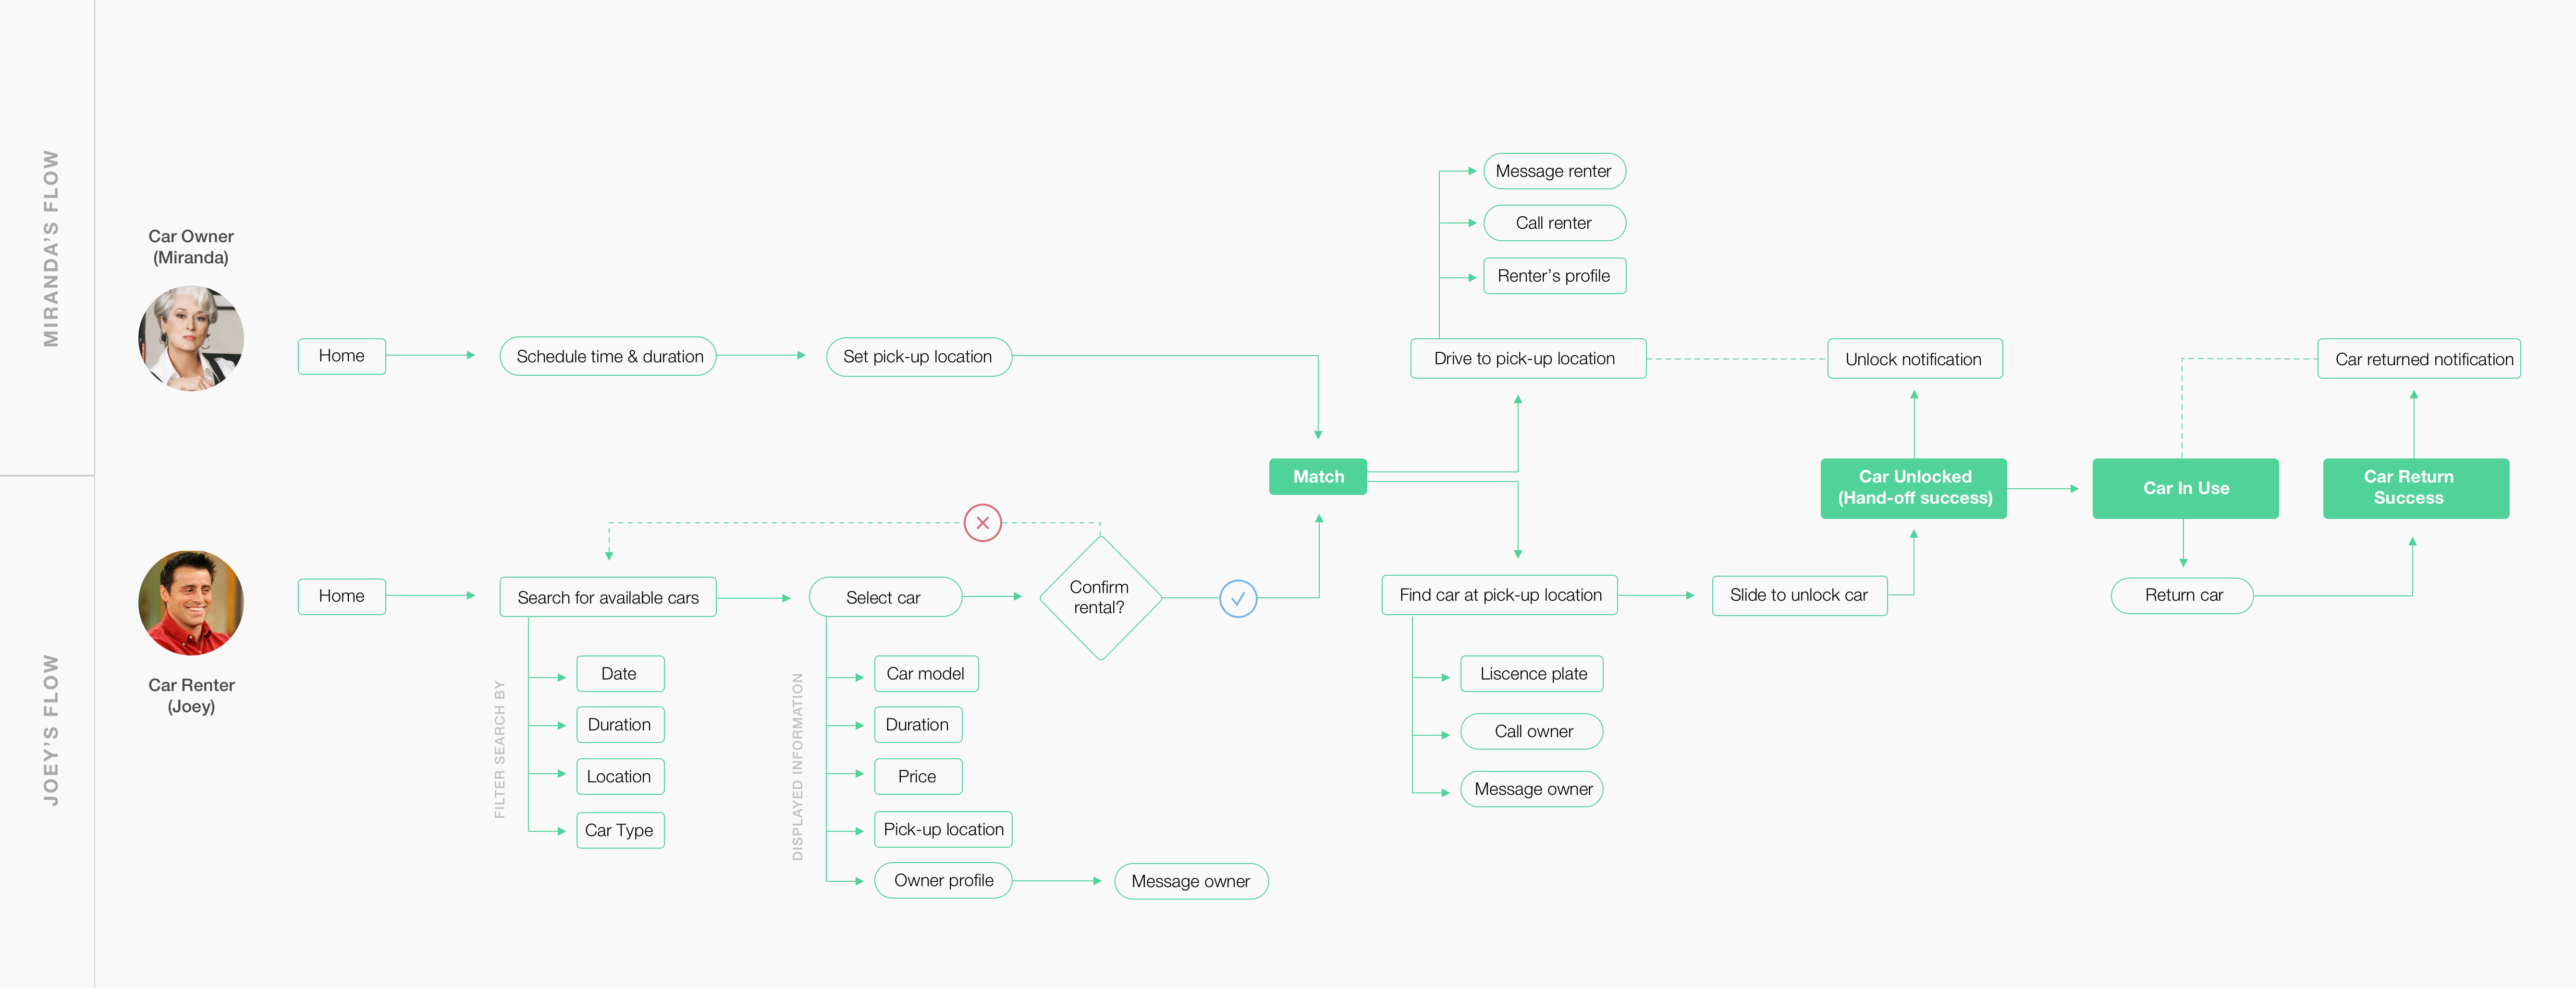 User flow chart of both the car owner and the car renter